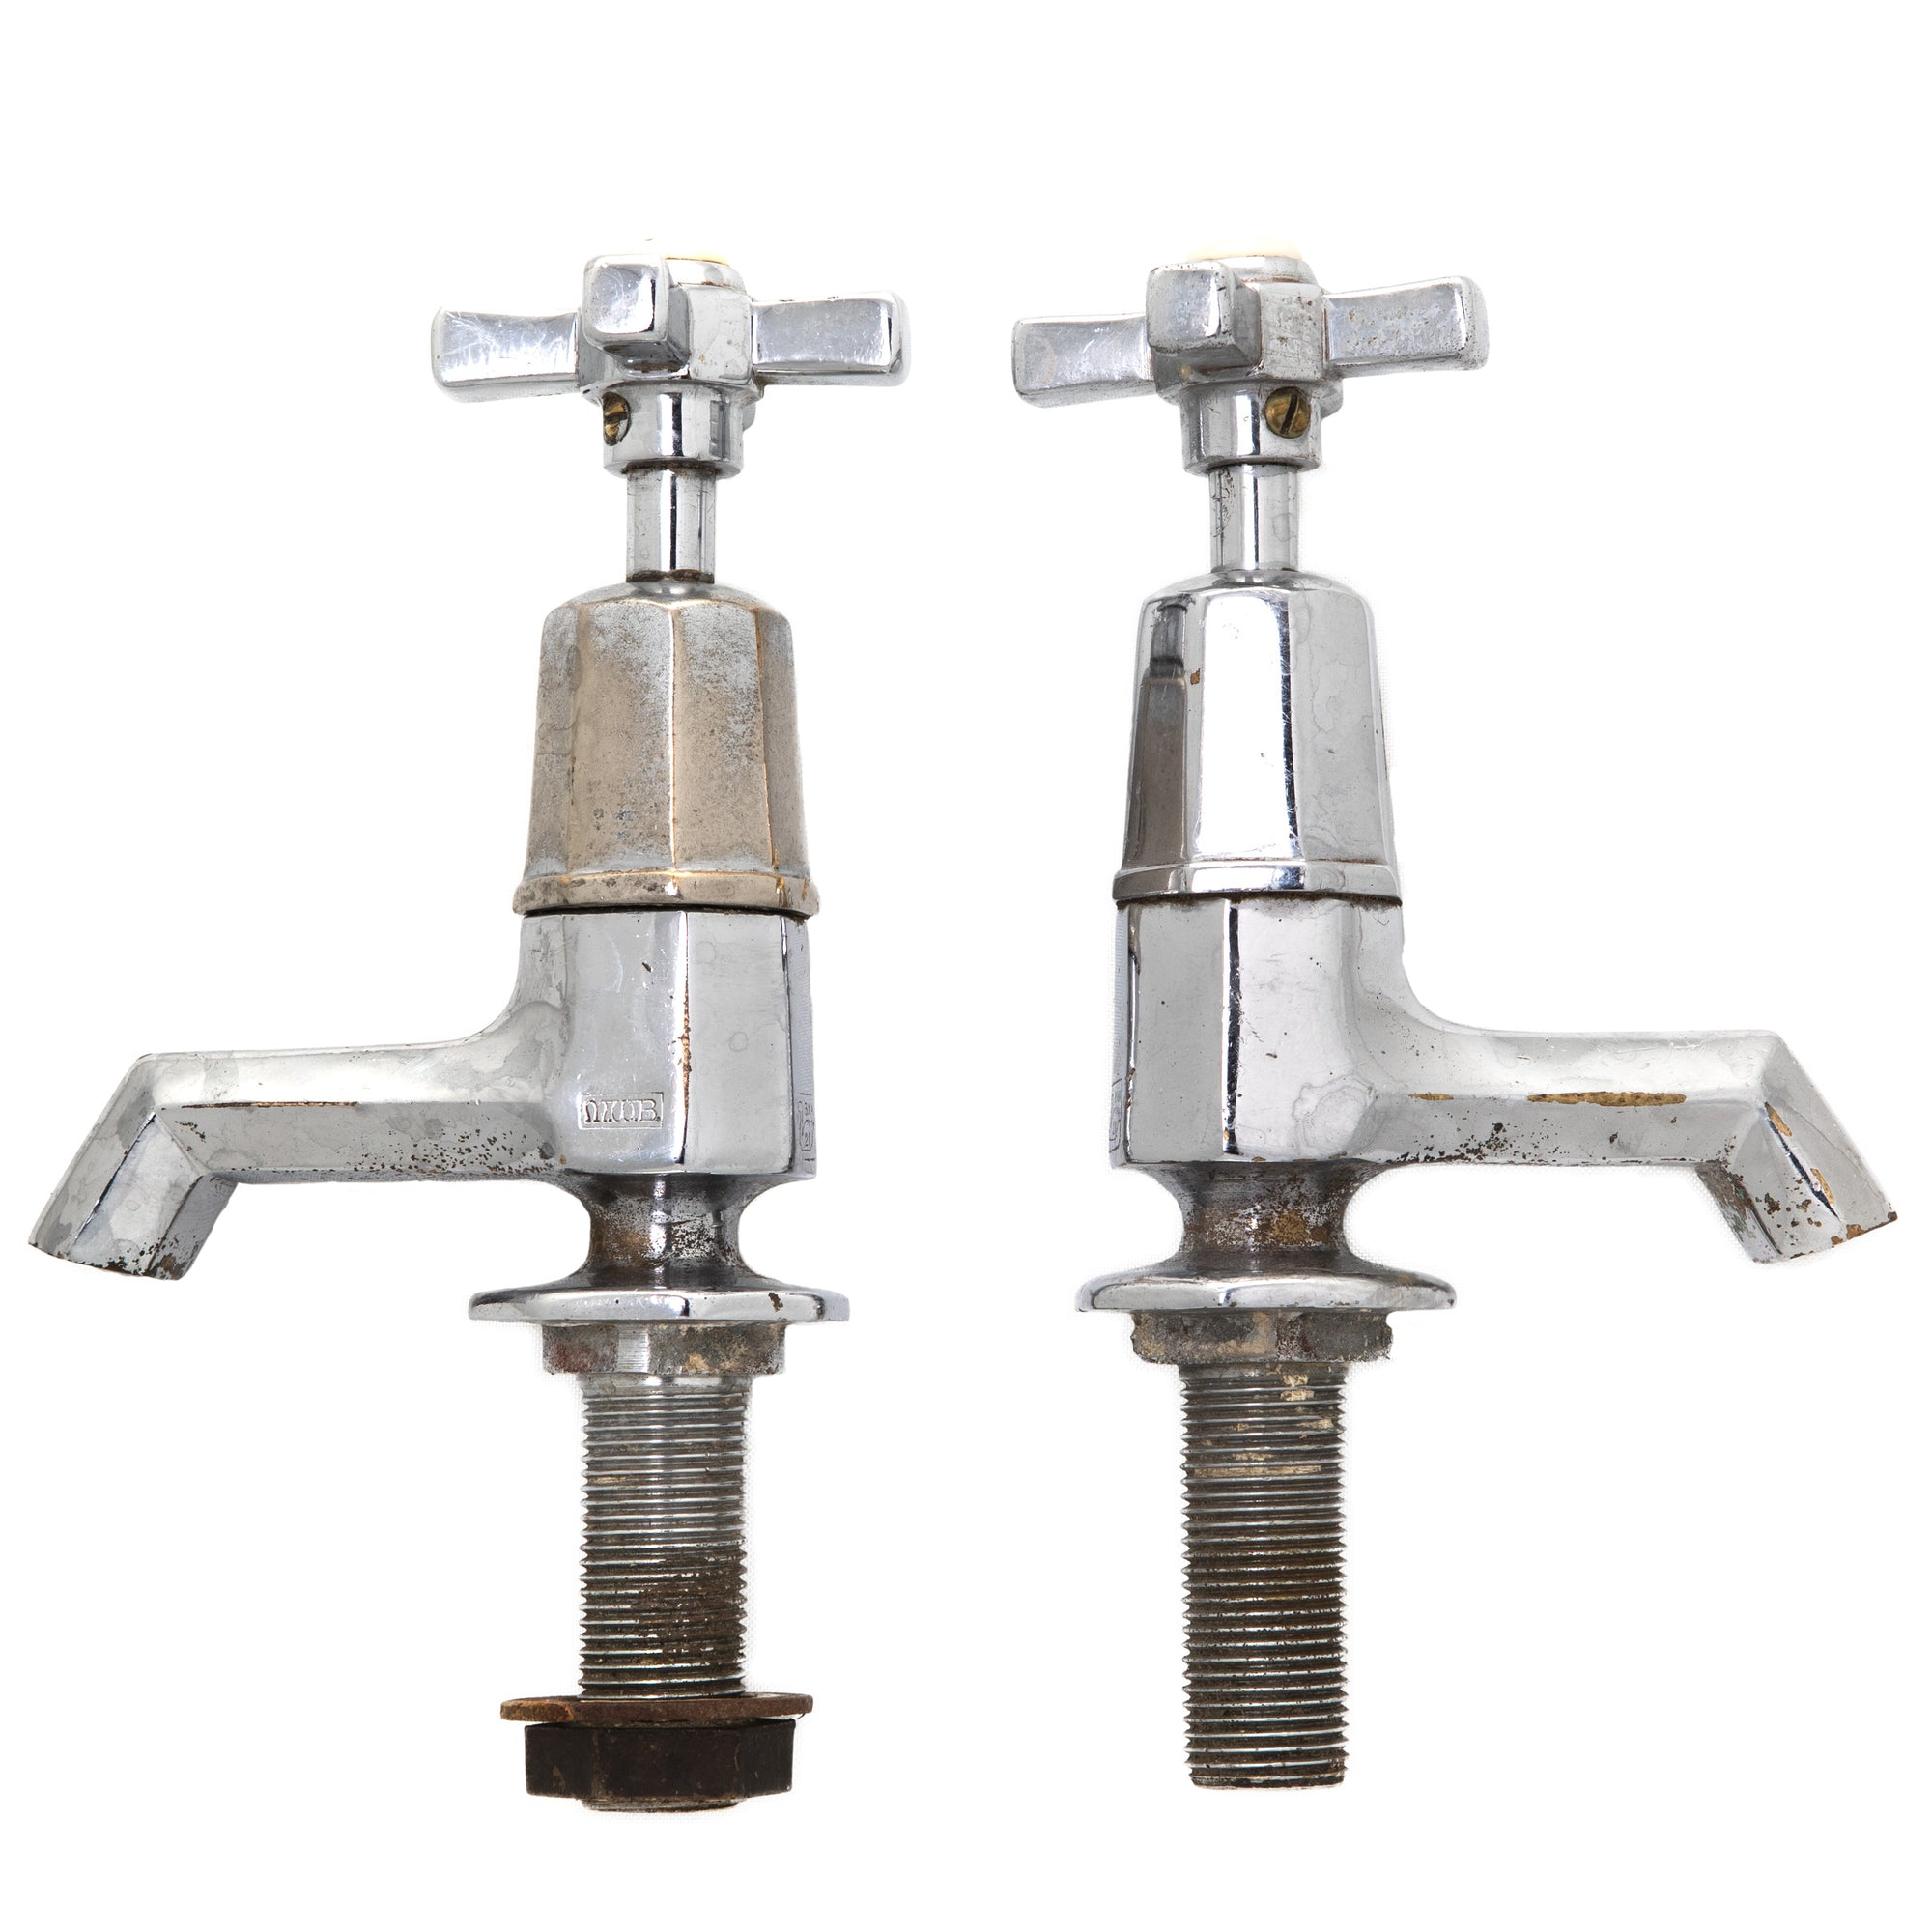 Pair of Reclaimed Art Deco Chrome Taps - architectural-forum